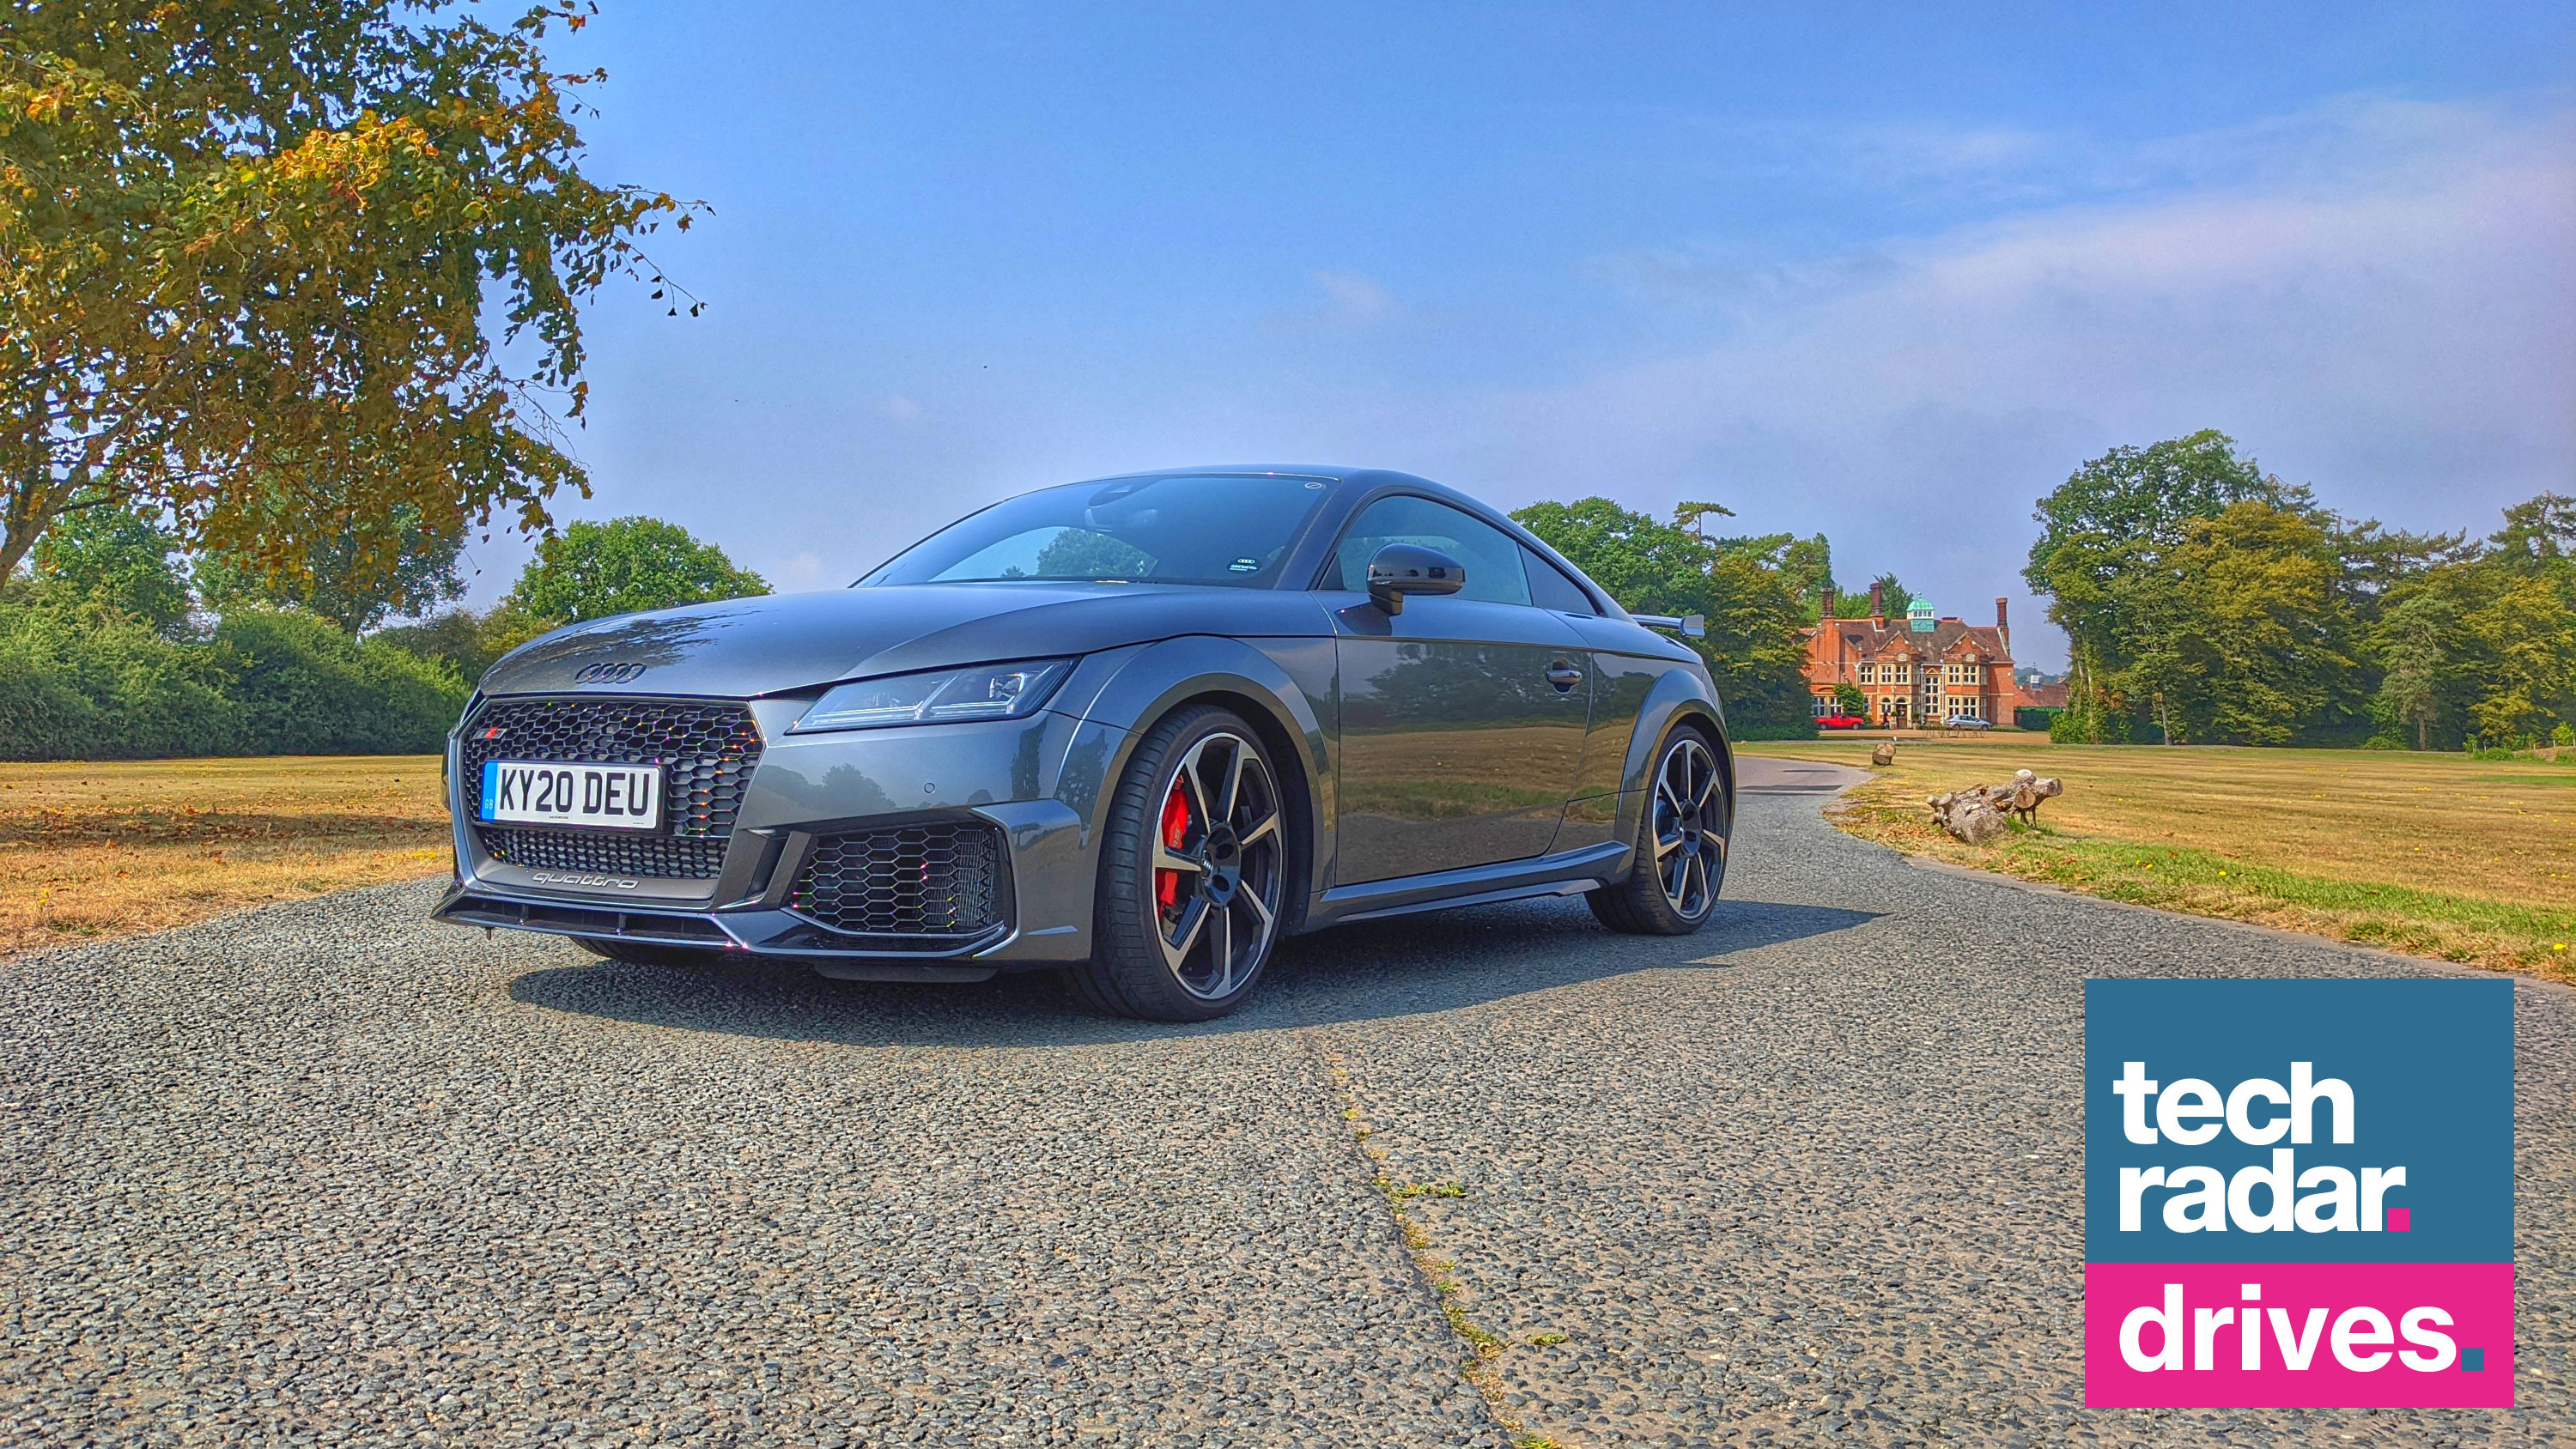 Audi Tt Rs The Pocket Rocket That Can Challenge A Supercar Techradar